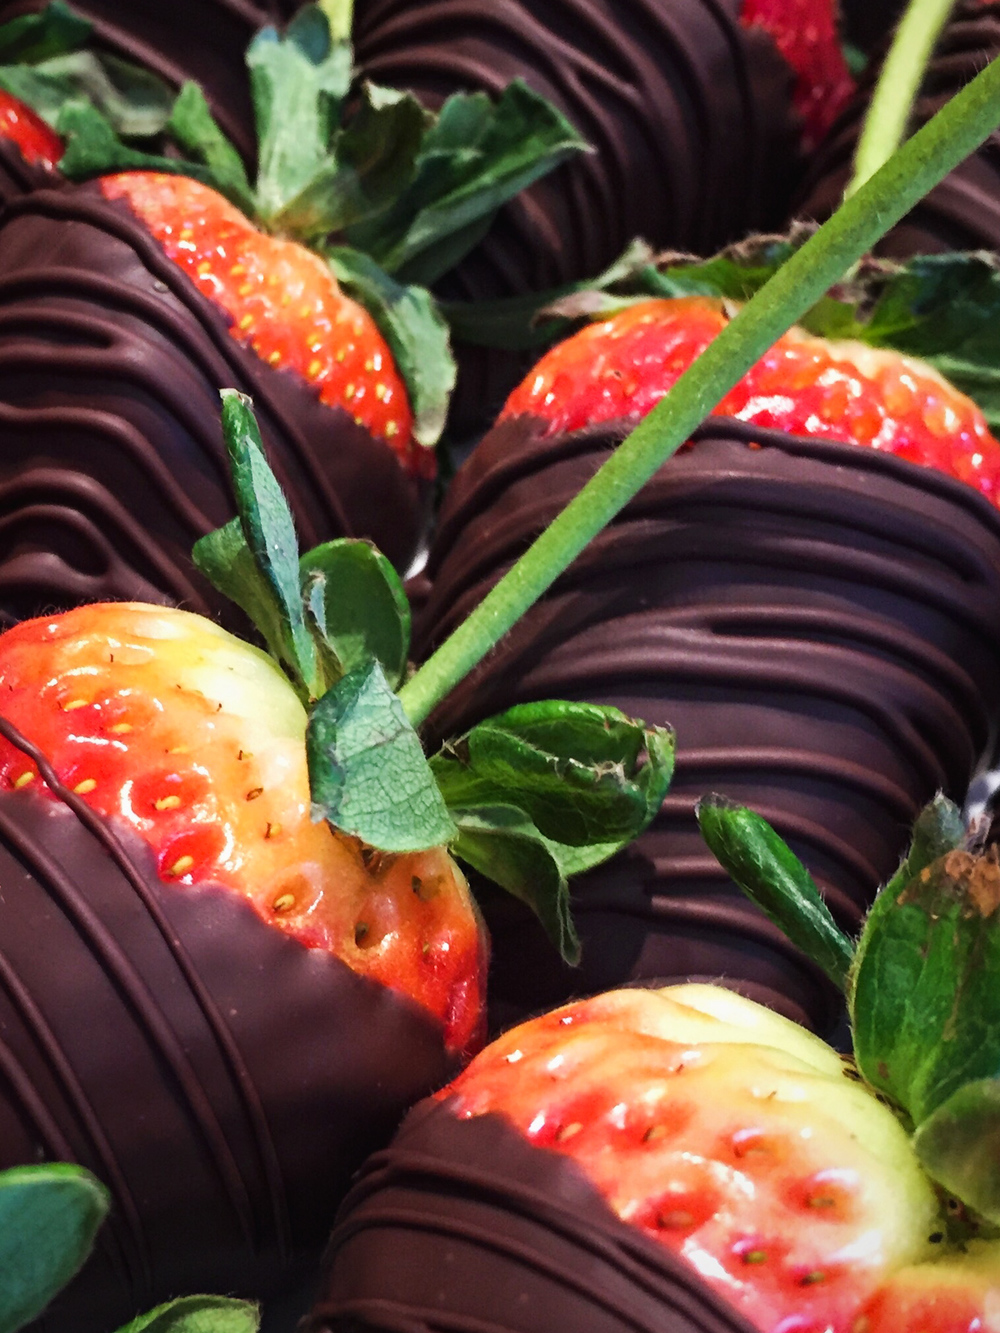 2016-02-12-vday-strawberries-2.jpg